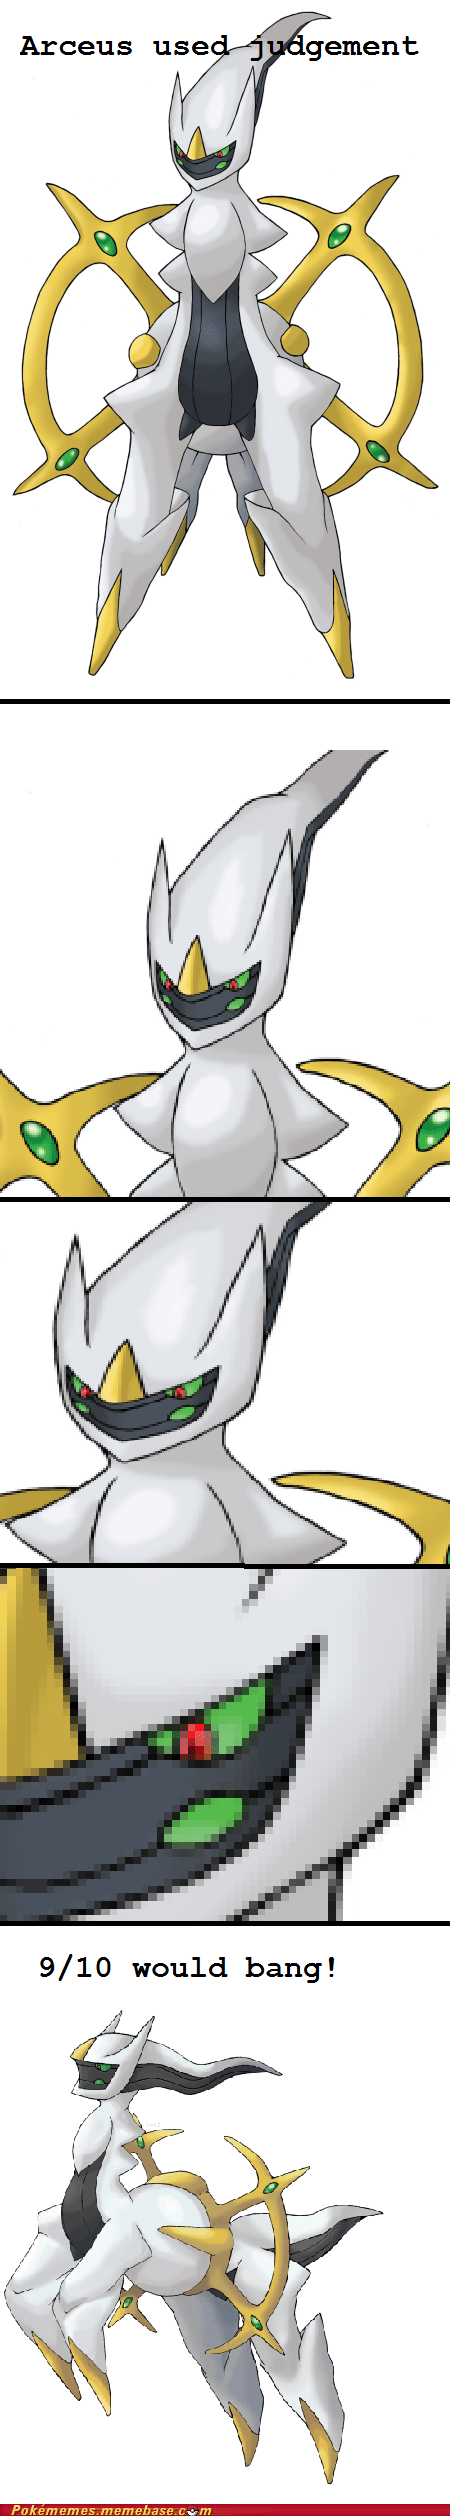 arceus judgment meme Memes would bang - 6414239232